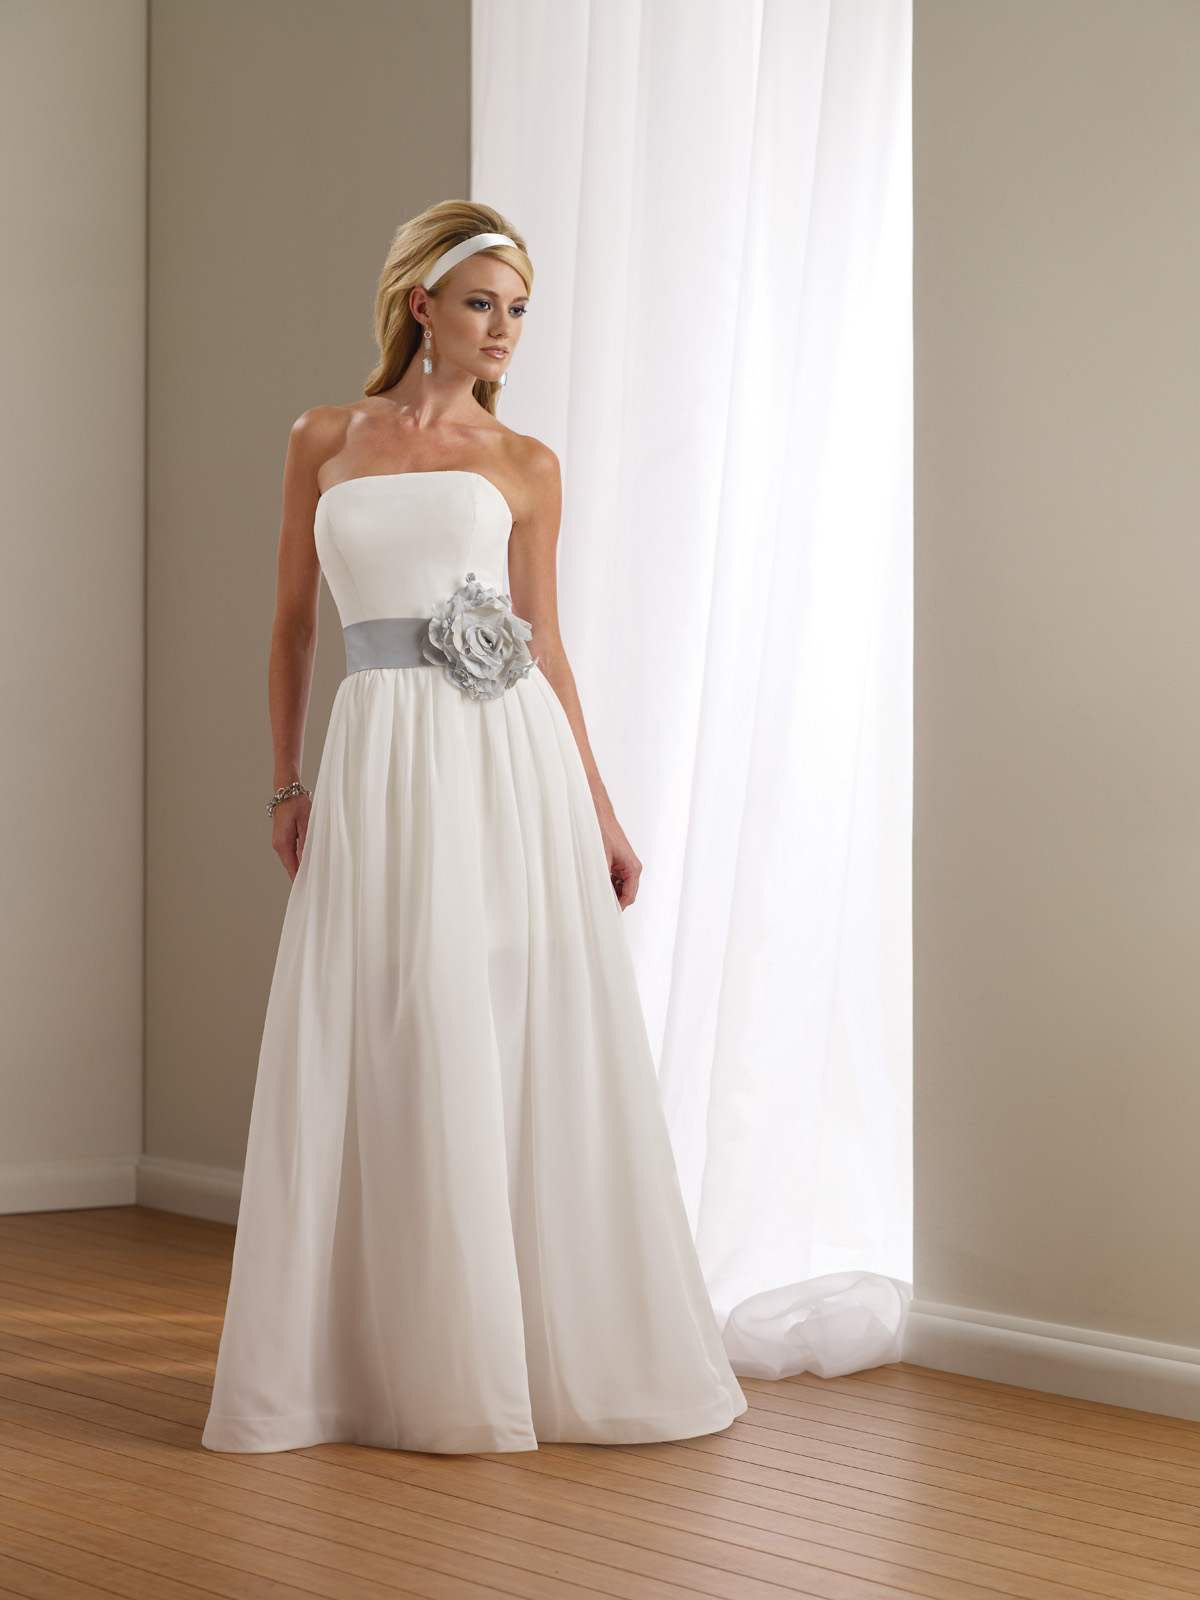 rustic country wedding gowns country themed wedding dresses Country Themed Wedding Dresses